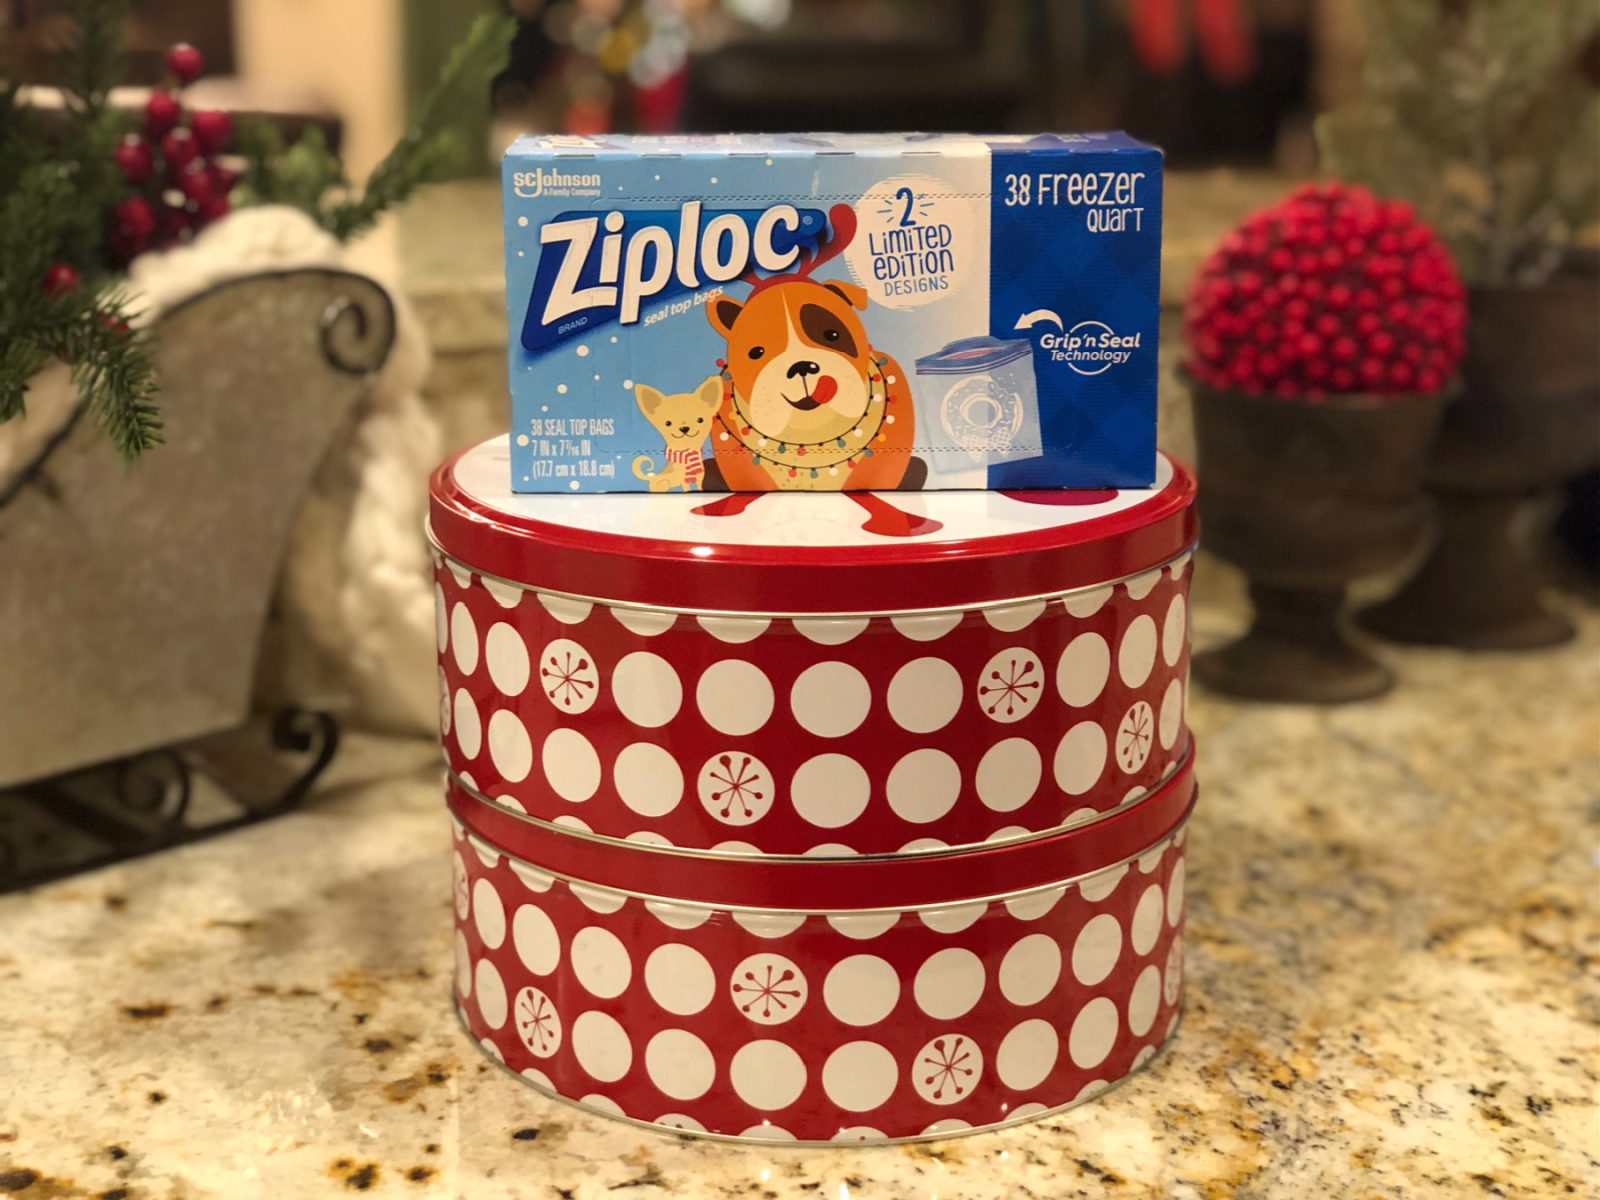 Celebrate The Season With Limited Edition Ziploc® Brand Holiday Bags - Why Not Host A Socially Distanced Cookie Exchange? on I Heart Publix